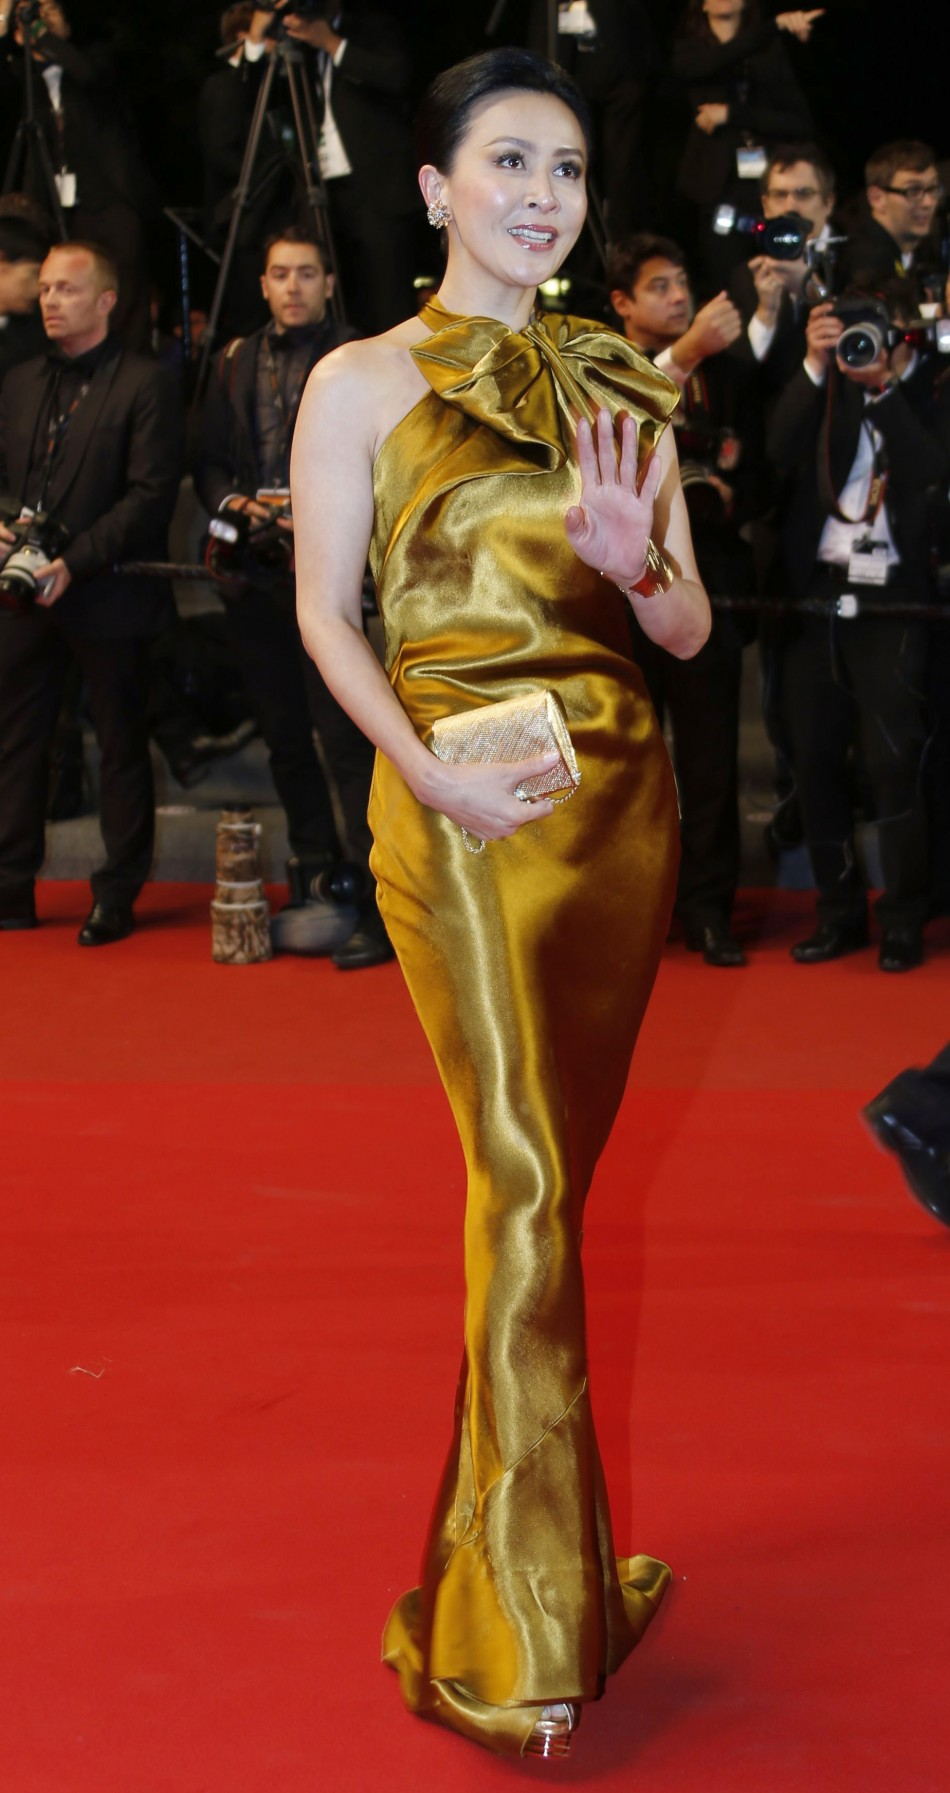 Actress Carina Lau poses on the red carpet as they for the screening of the film 'Tian Zhu Ding' (A Touch of Sin) in competition during the 66th Cannes Film Festival in Cannes May 17, 2013.